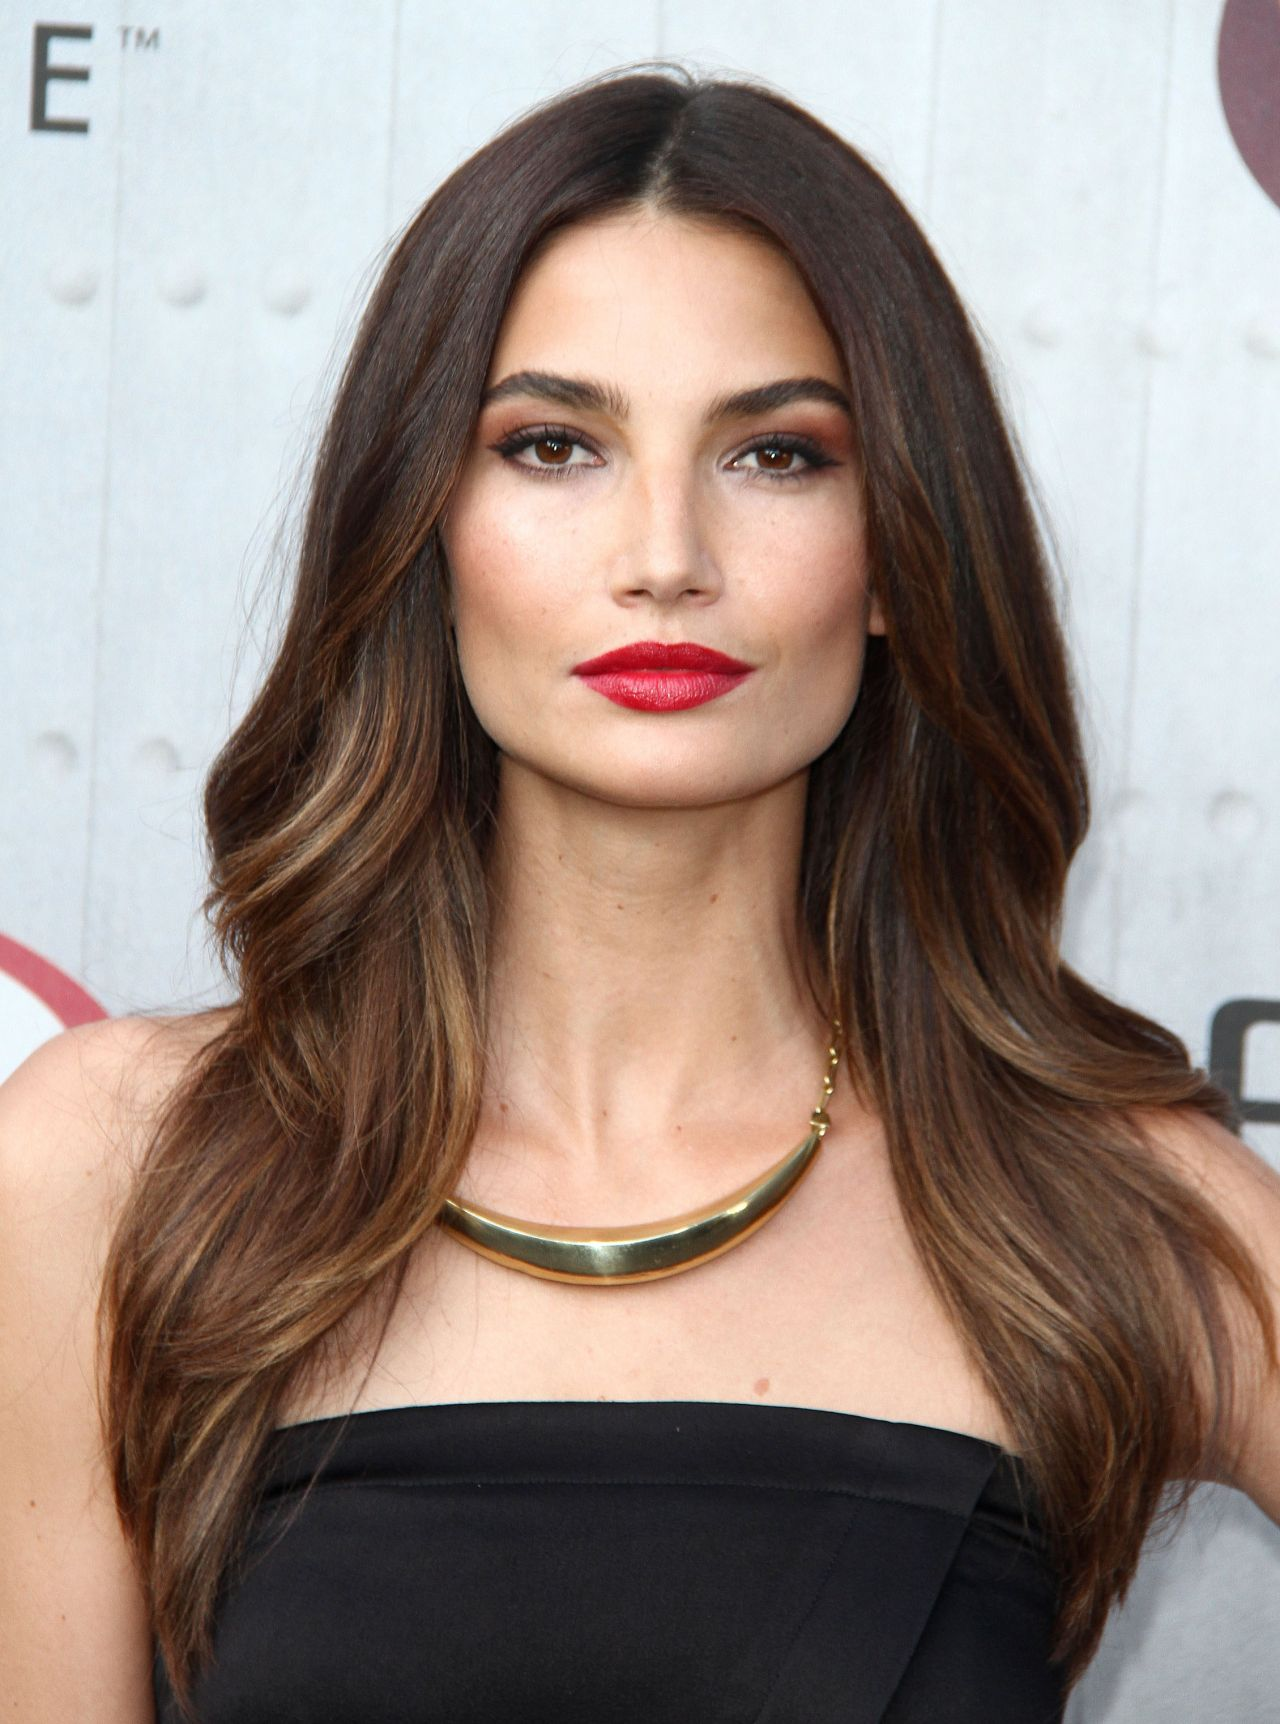 Lily Aldridge Wallpapers High Quality Download Free